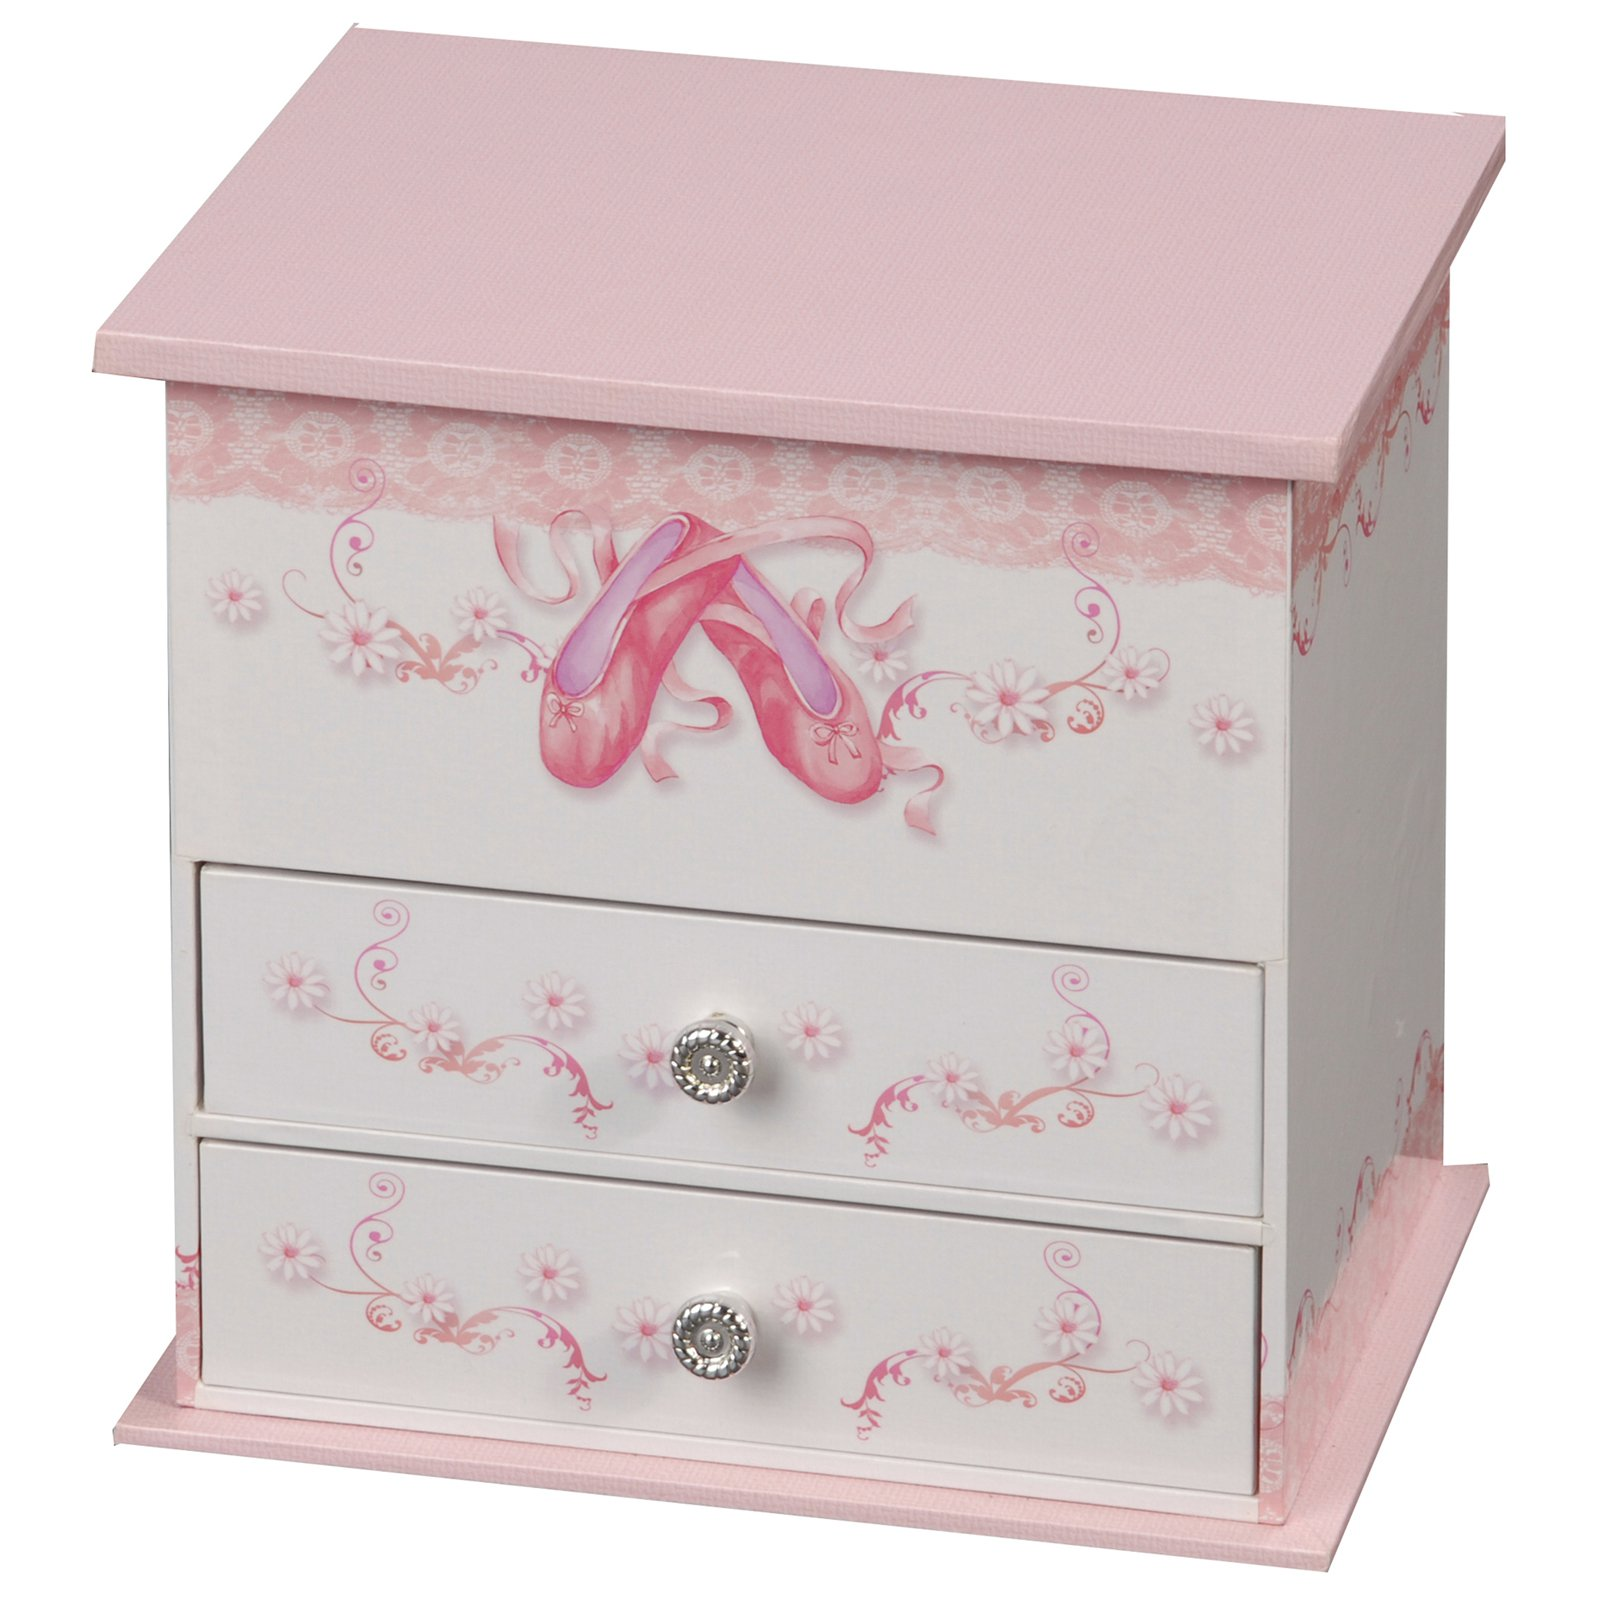 Mele & Co. Angel Musical Dancing Ballerina Jewelry Box - 7W x 6.3H in.